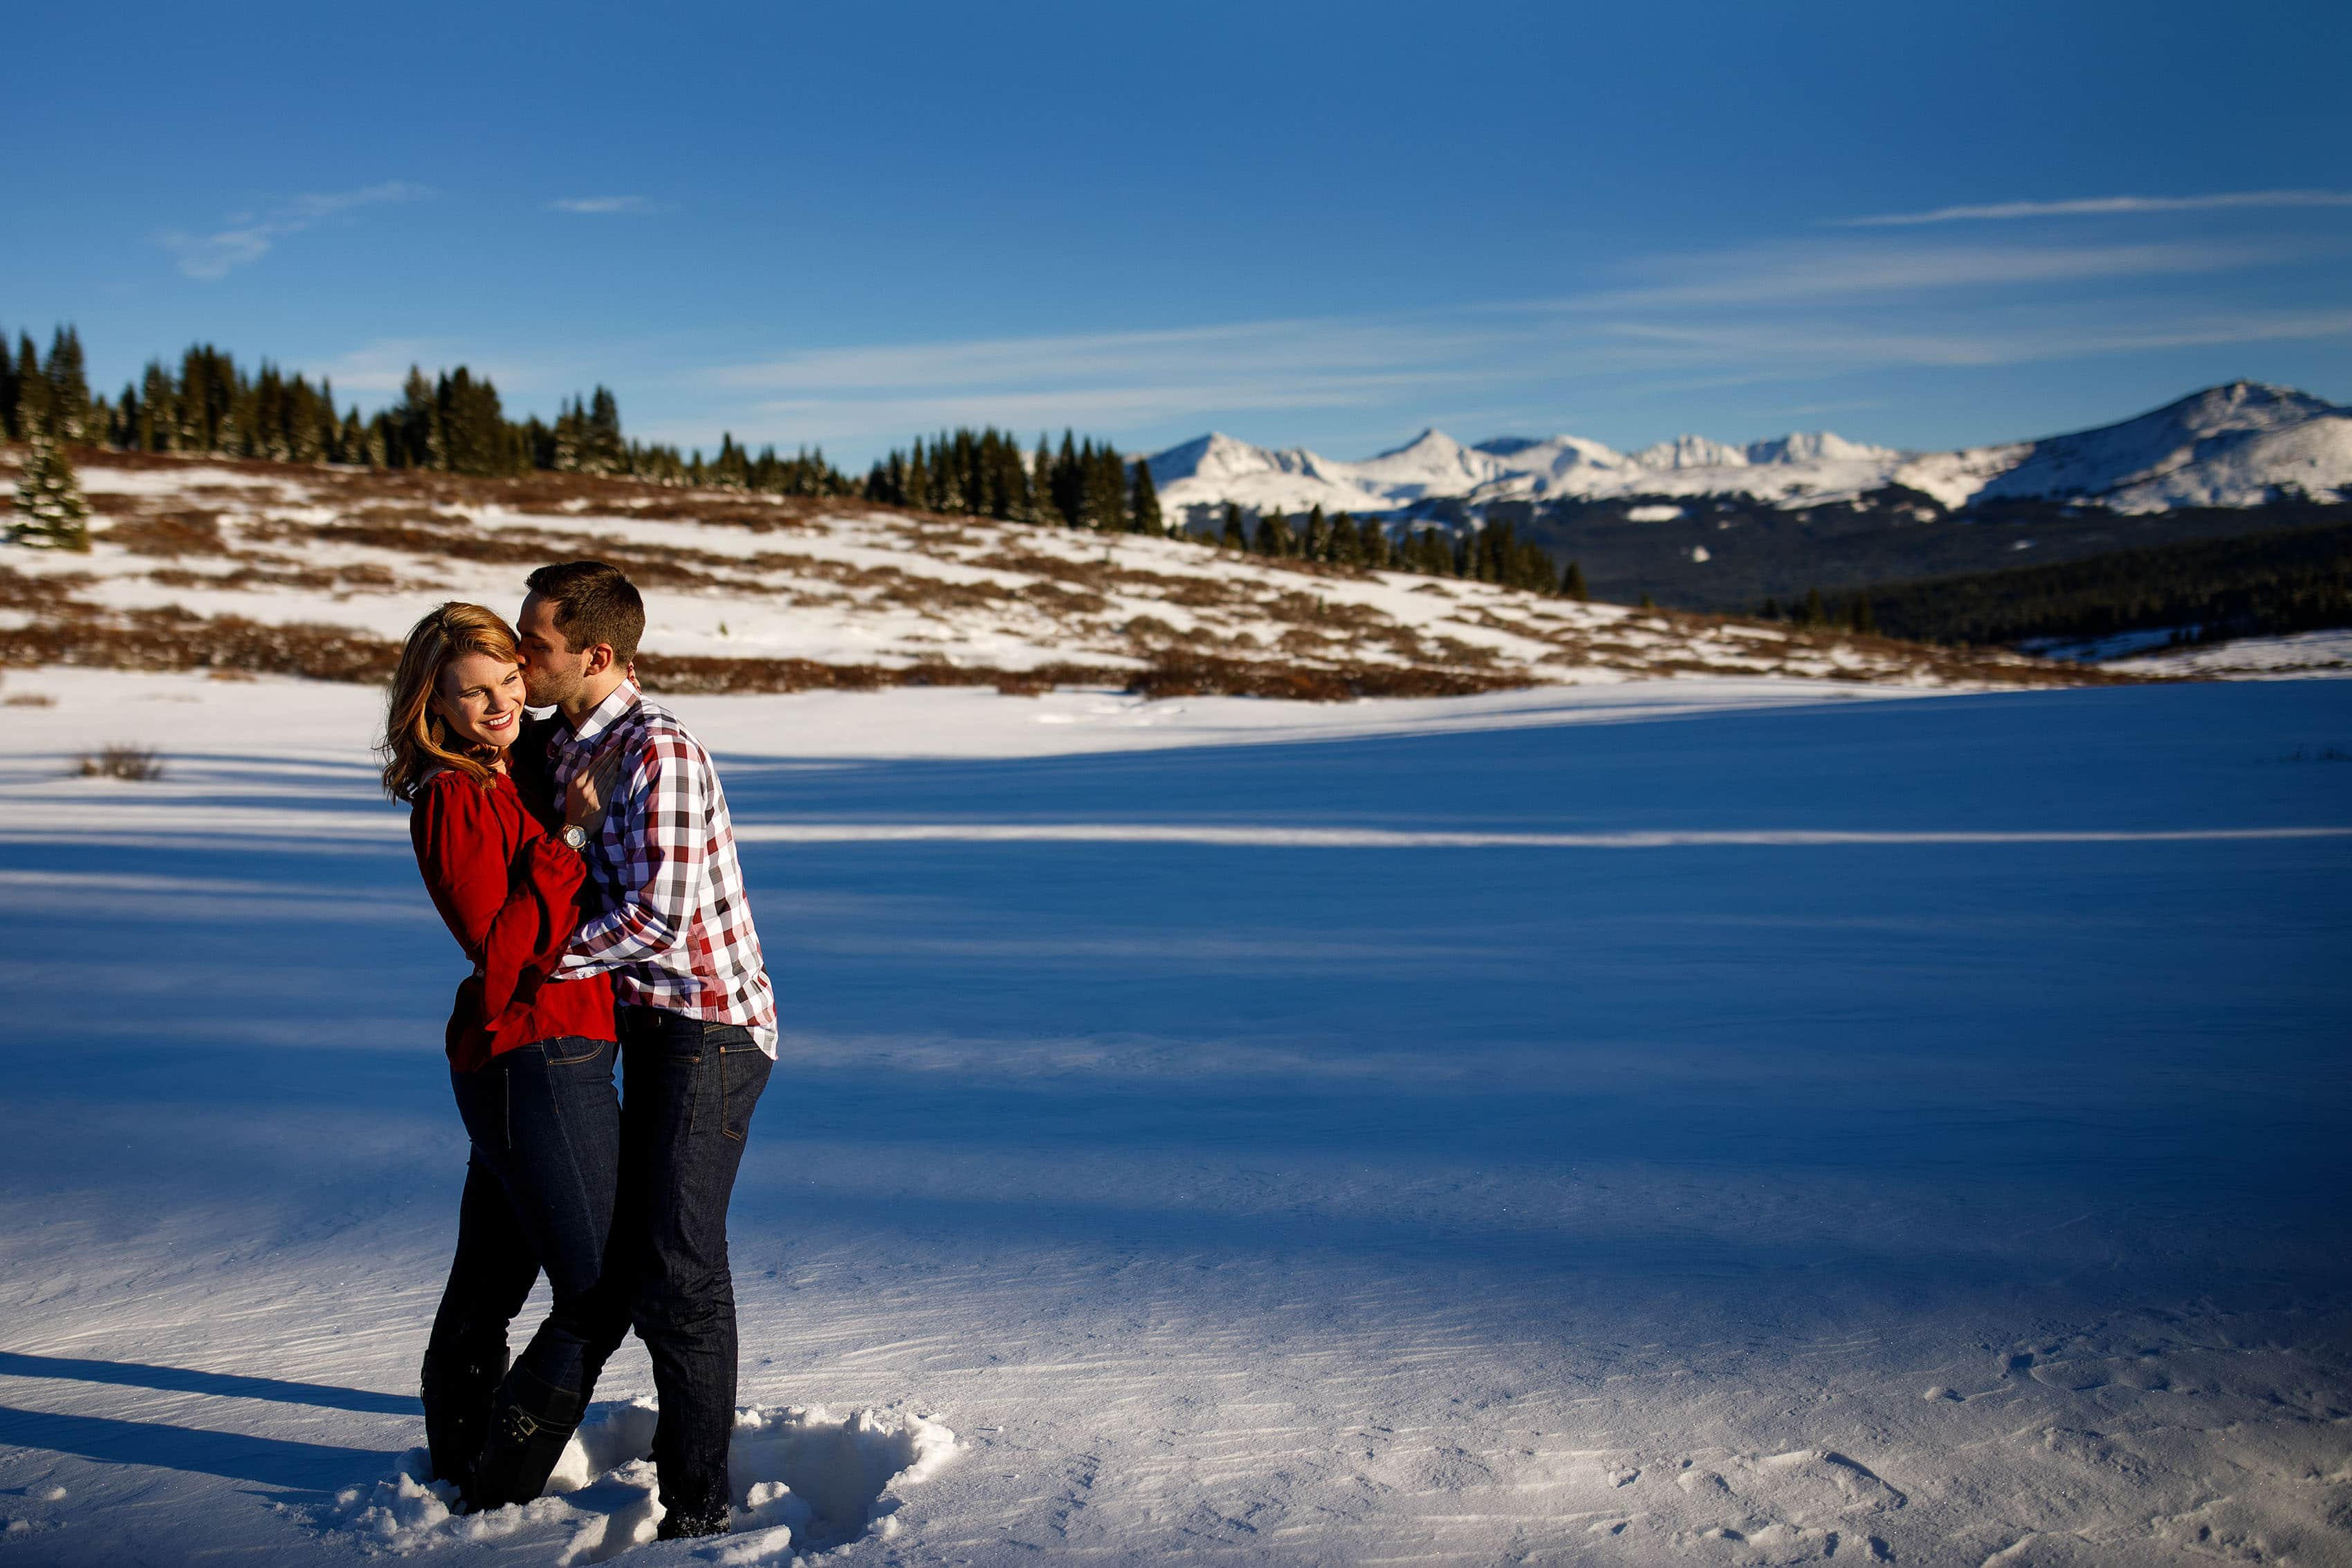 Micha kisses Julia during their fall engagement session atop Shrine Pass near Vail